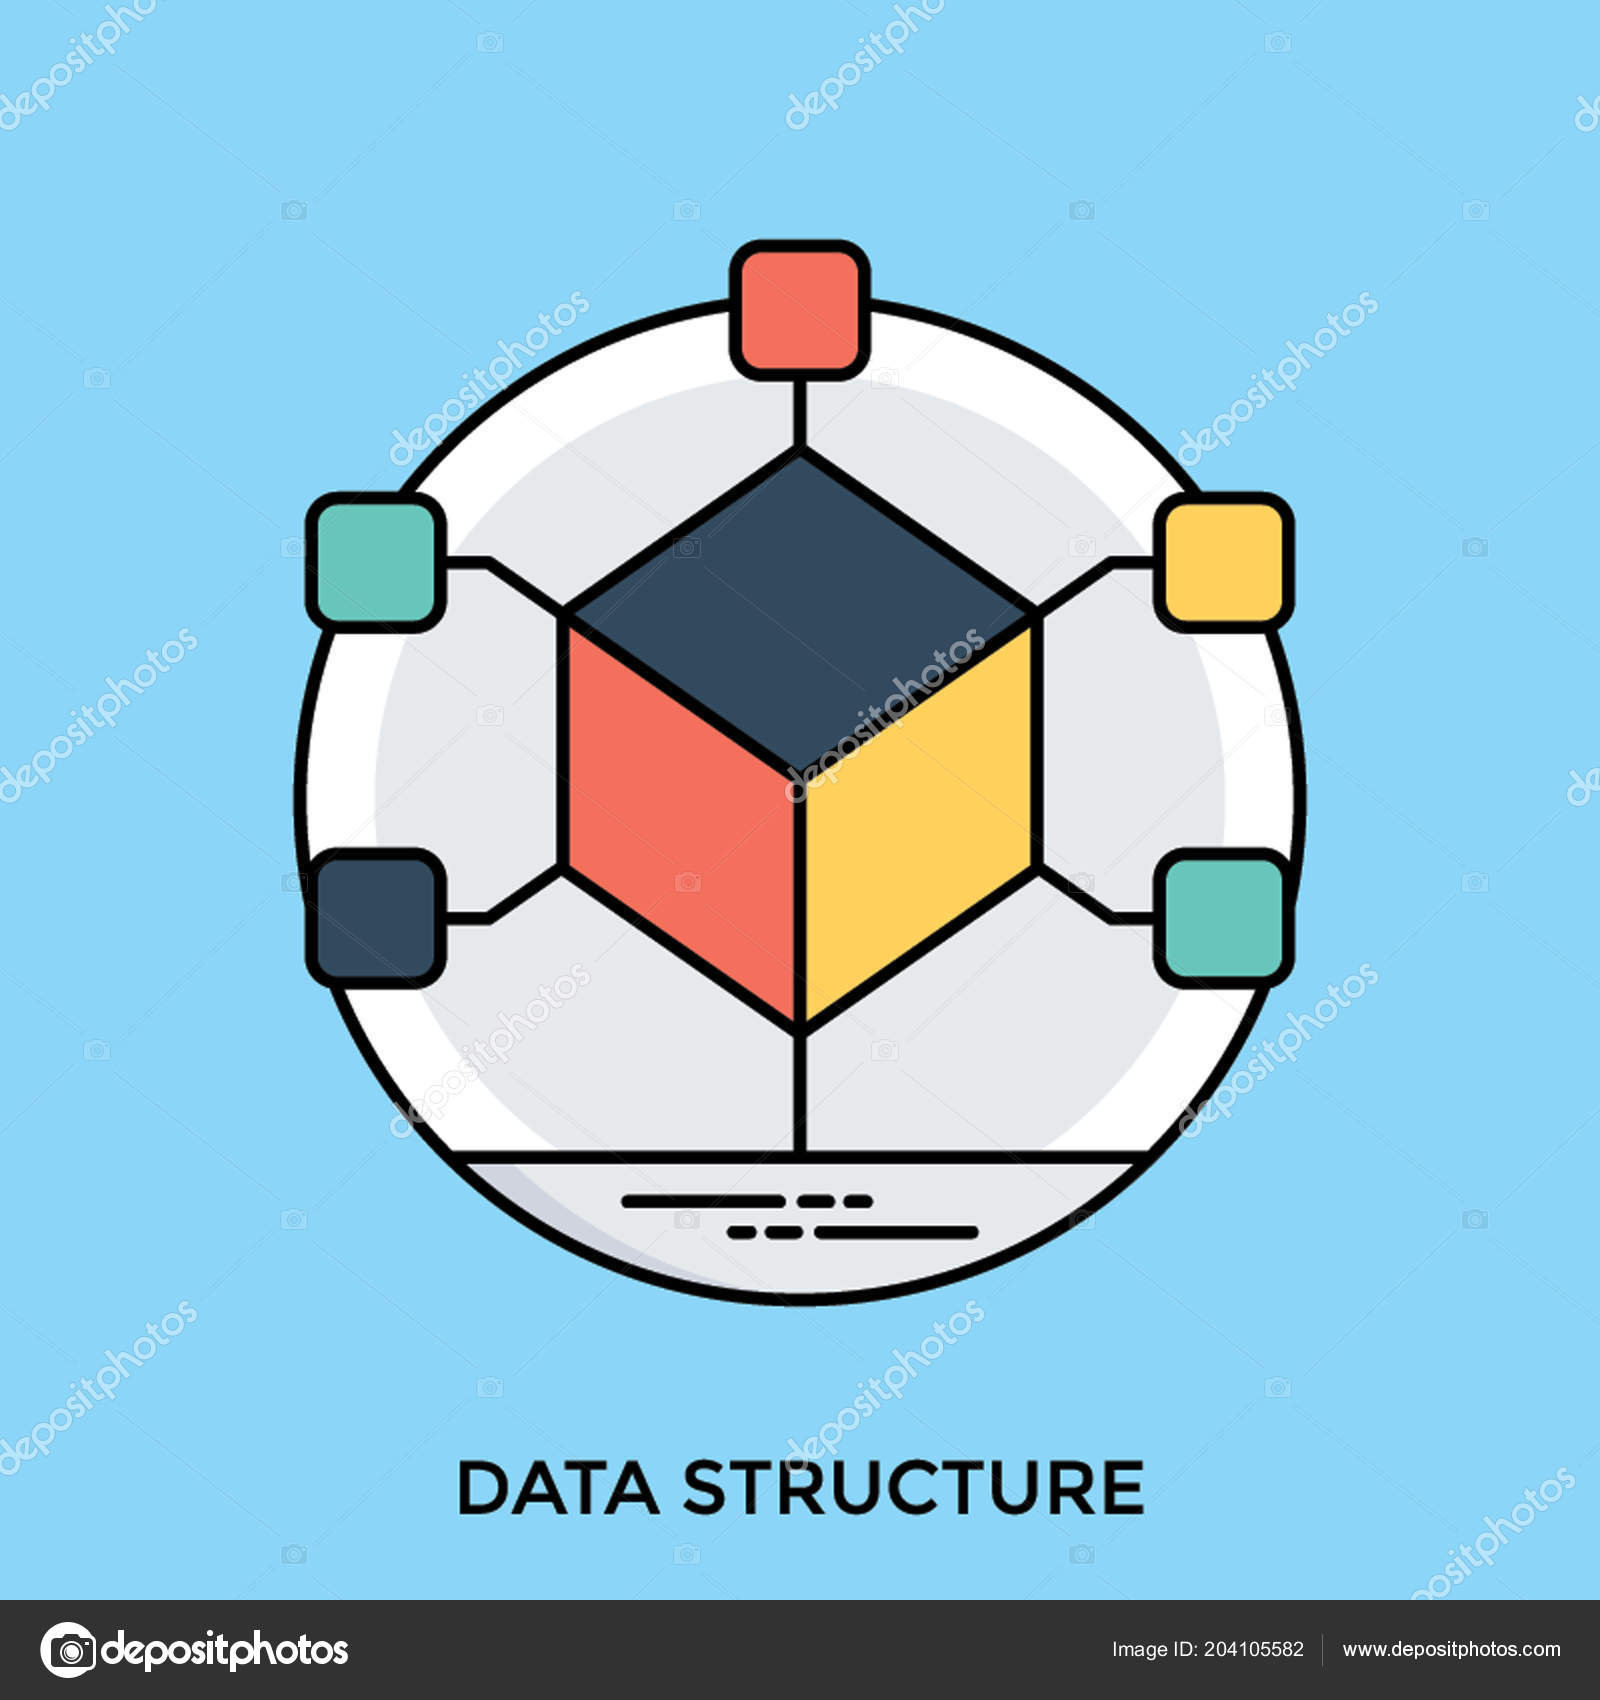 cube attached nodes all corners showing data structure icon stock vector c vectorsmarket 204105582 https depositphotos com 204105582 stock illustration cube attached nodes all corners html